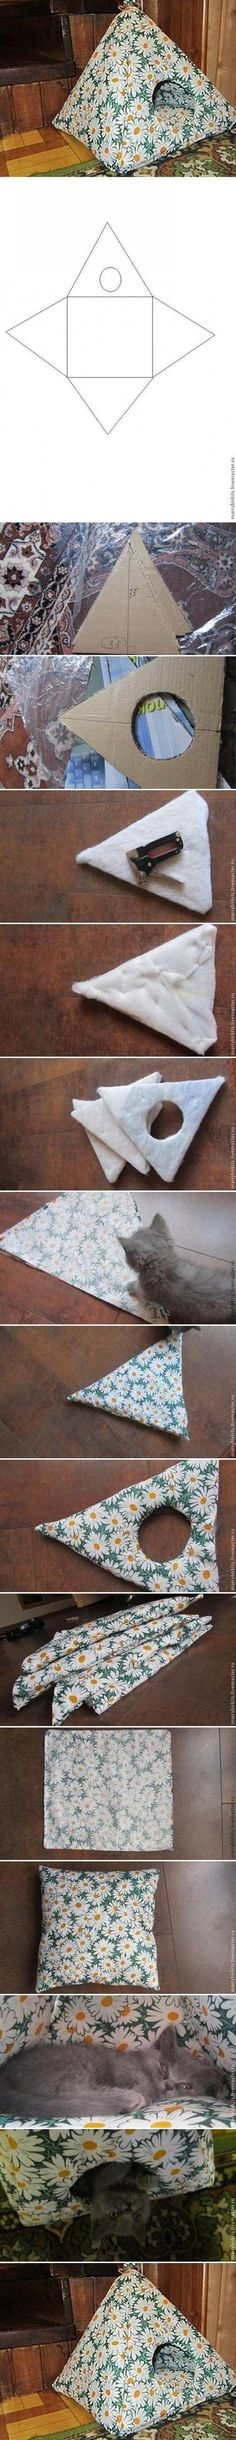 DIY cat house, also great for stray cats so they can stay warm and safe! Repinned from Vital Outburst clothing vitaloutburst.com #catsdiyhouse #catsdiylitterbox #straycathouse